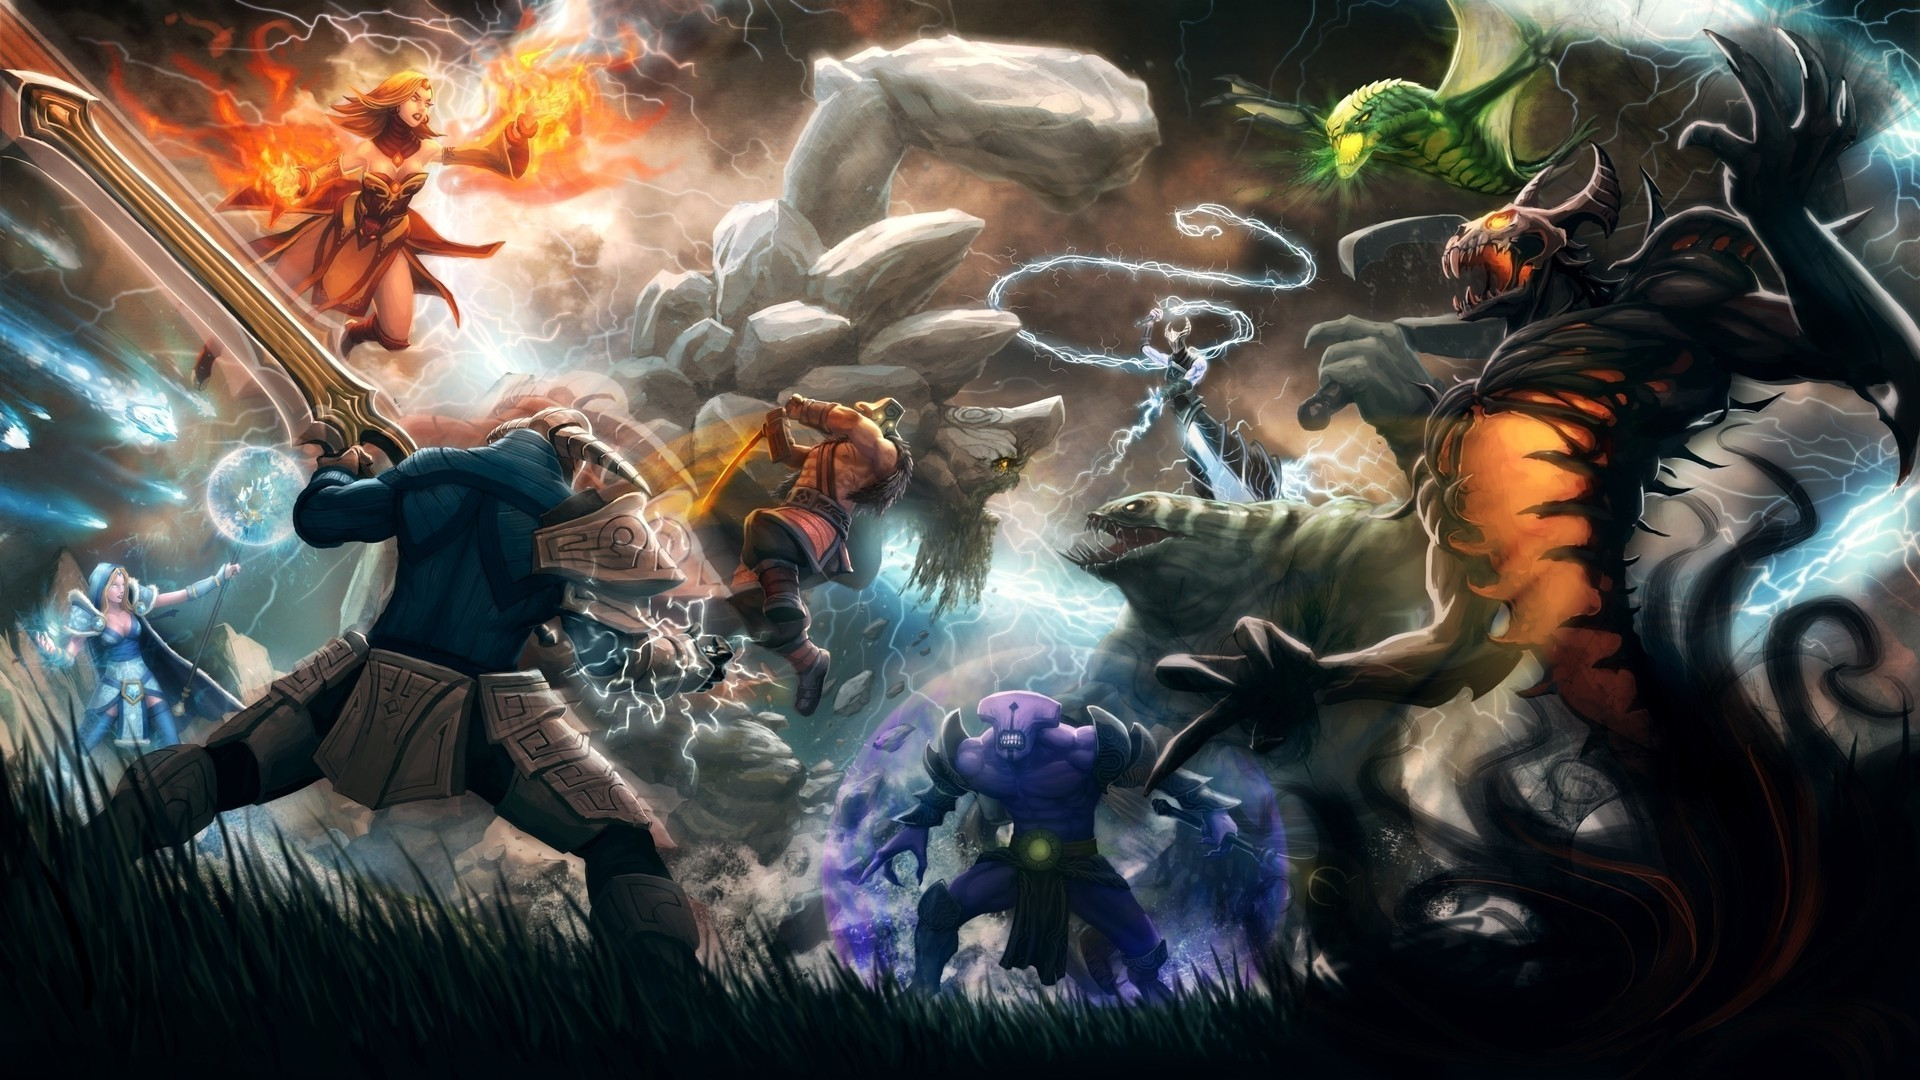 dota 2 game background - photo #21